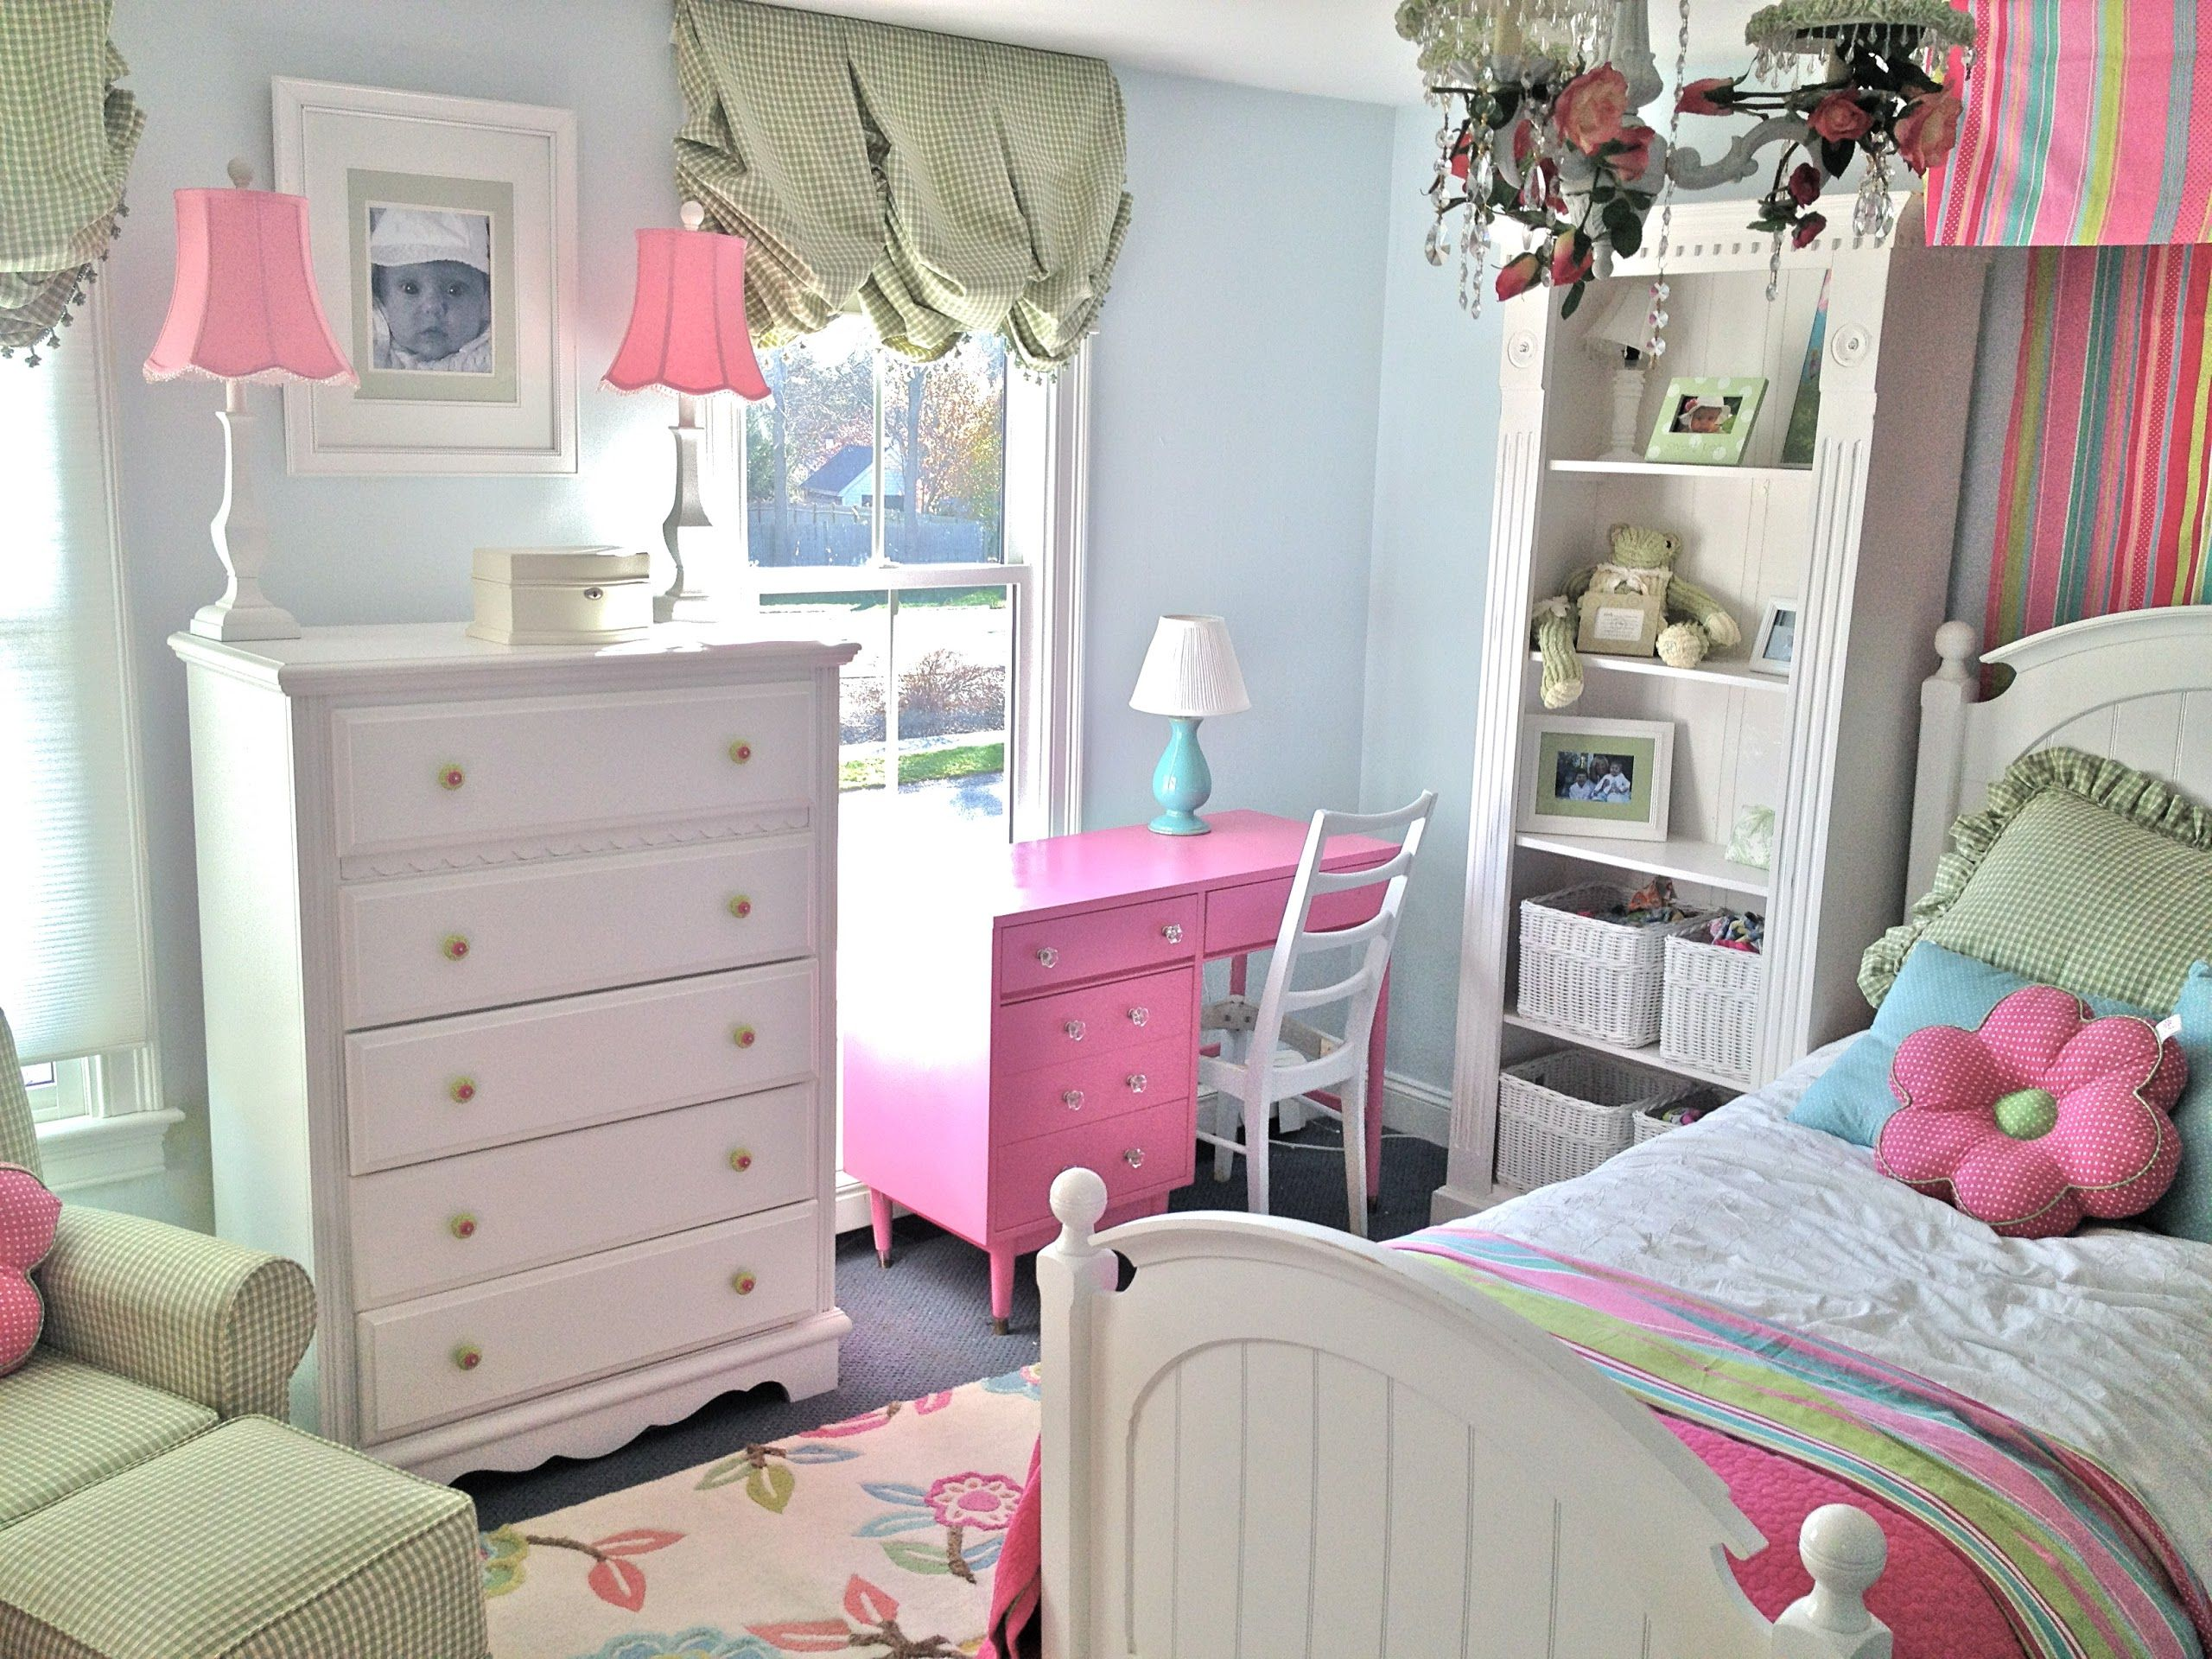 White Desk For Girls Room Adorable Cute White And Light Blue Room Decoration For Teen Girl Bedroom Design Ideas